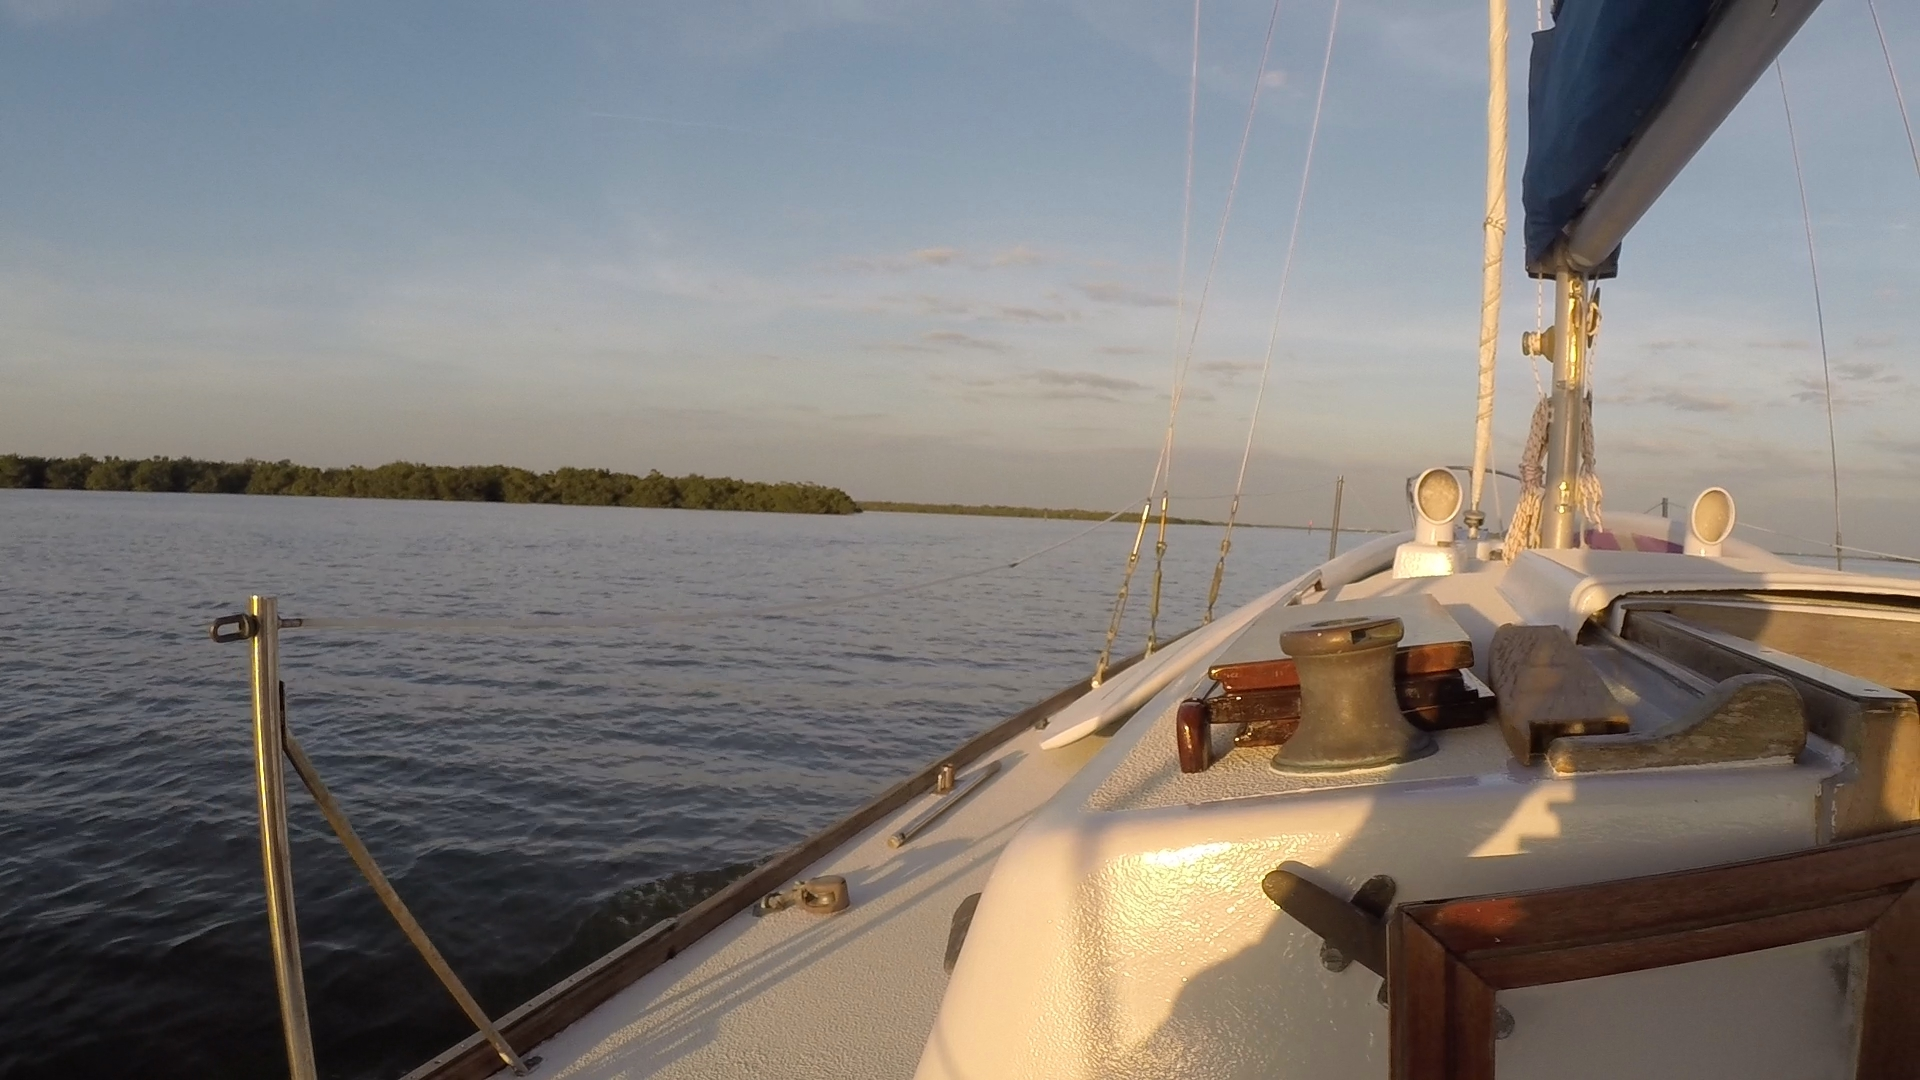 Motoring into Merwin Key for the night. It was a calm and placid evening.